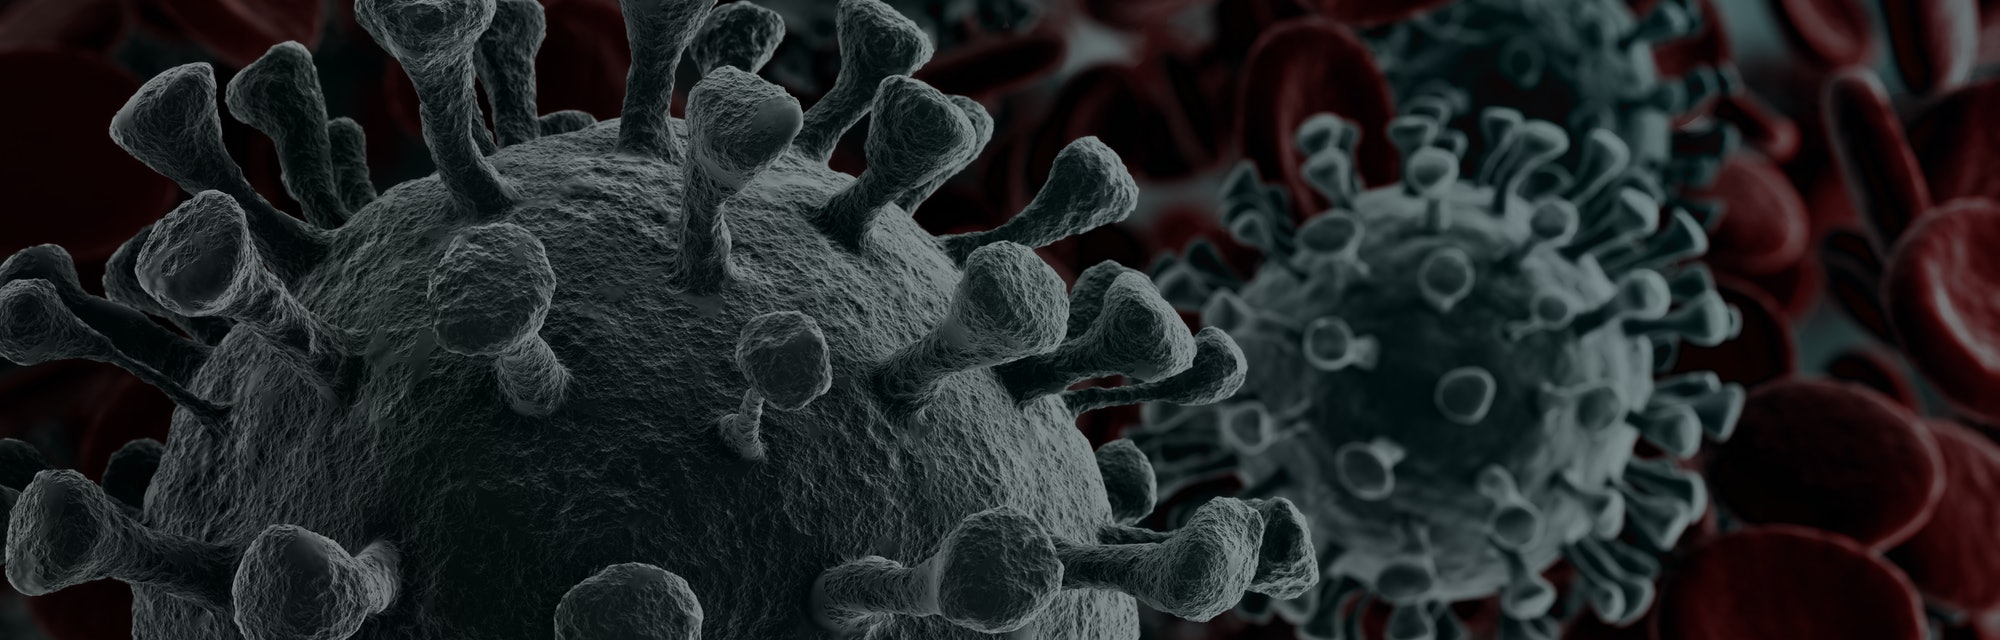 Coronavirus 2019-nCov novel coronavirus concept resposible for asian flu outbreak and coronaviruses influenza as dangerous flu strain cases as a pandemic. Microscope virus close up. 3d rendering.